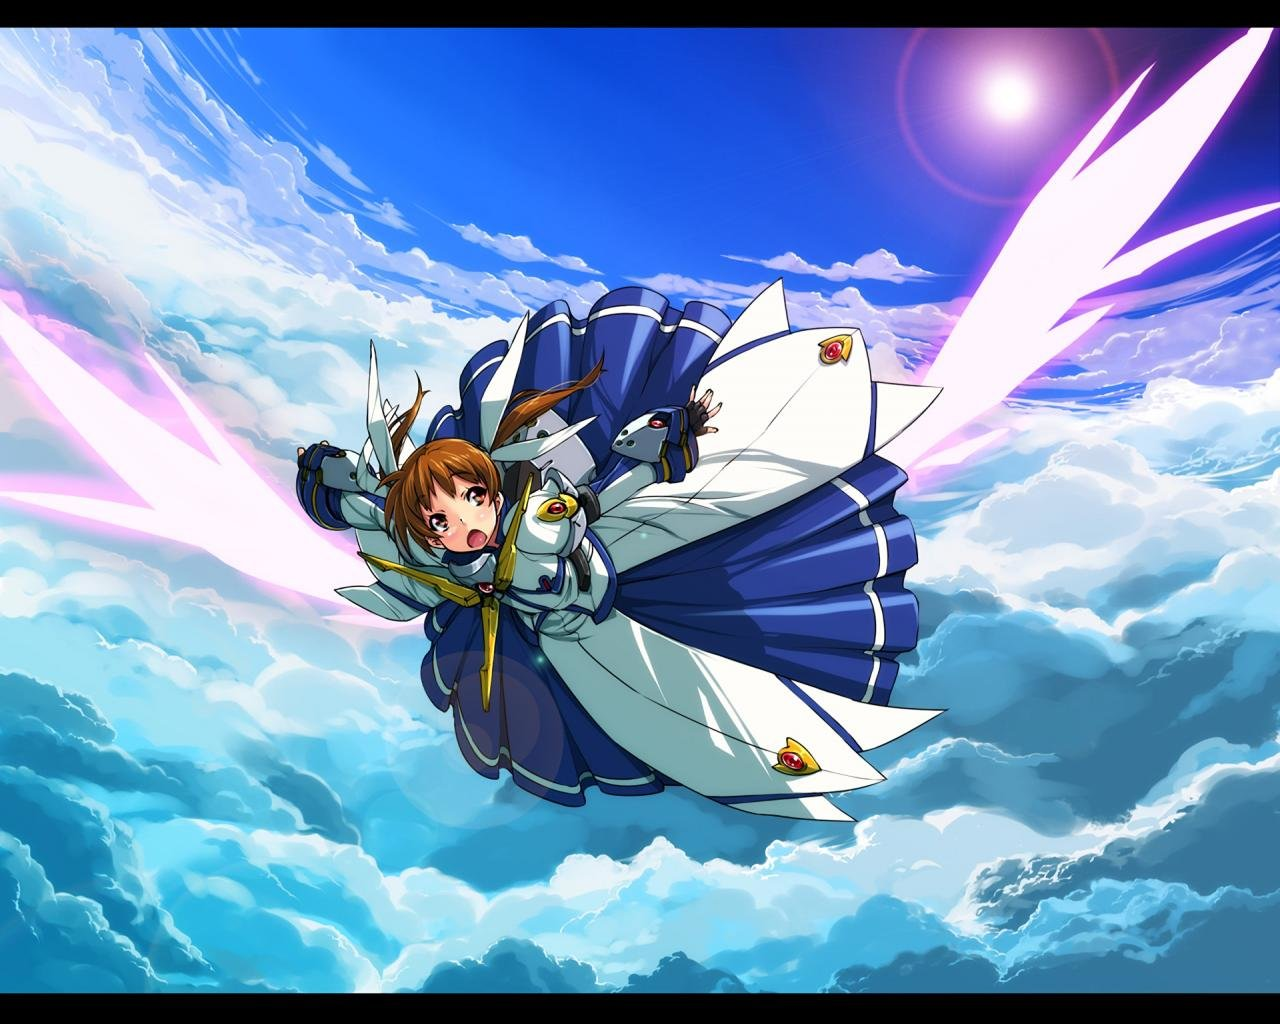 Download hd 1280x1024 Magical Girl Lyrical Nanoha computer background ID:297519 for free